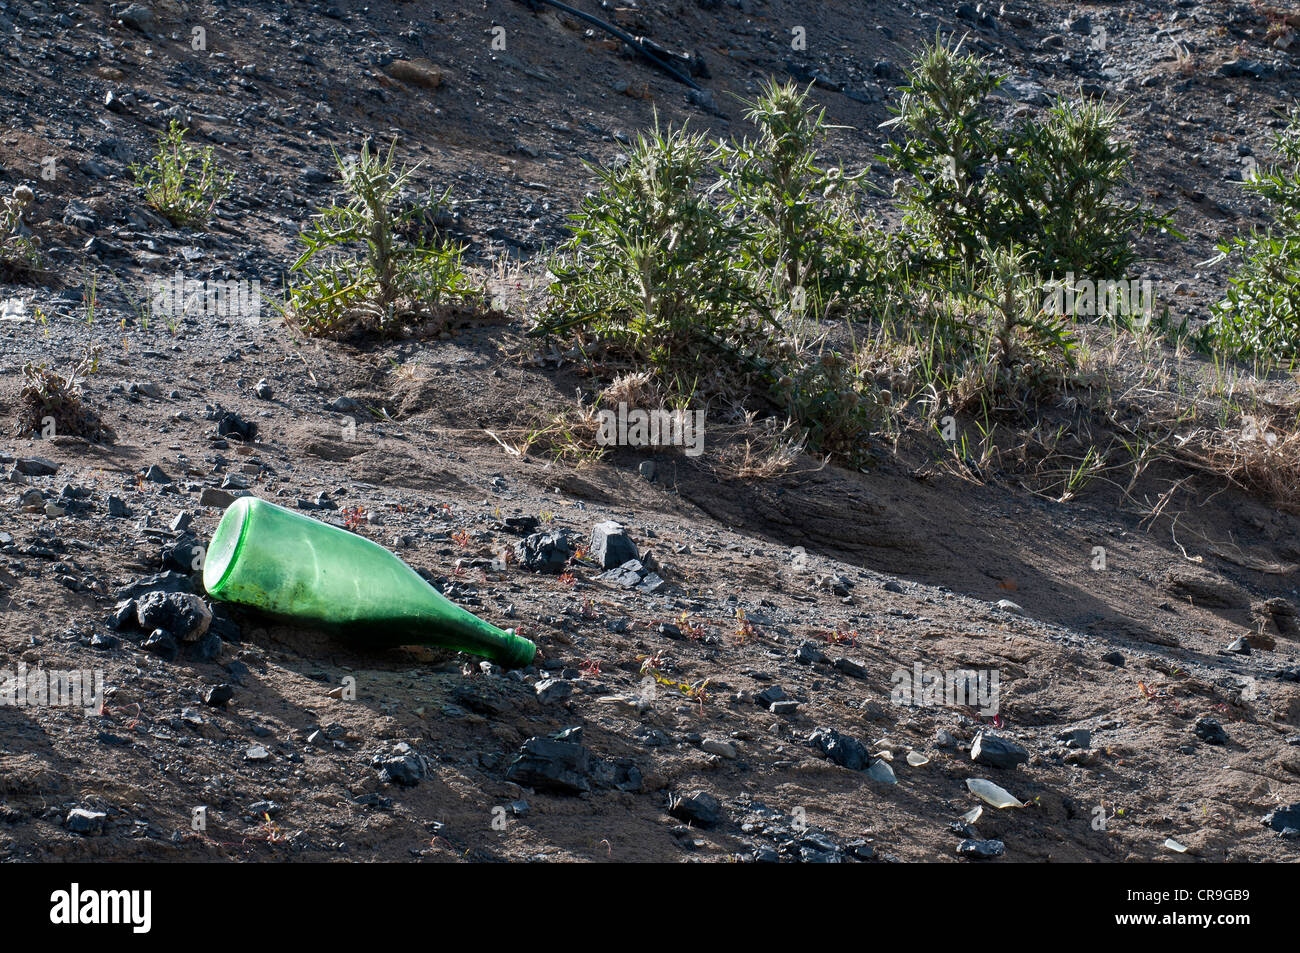 Wasteland with discarded bottle backlit Yacimientos Carboniferos de Rio Turbio Coal Mine Santa Cruz Province Patagonia - Stock Image